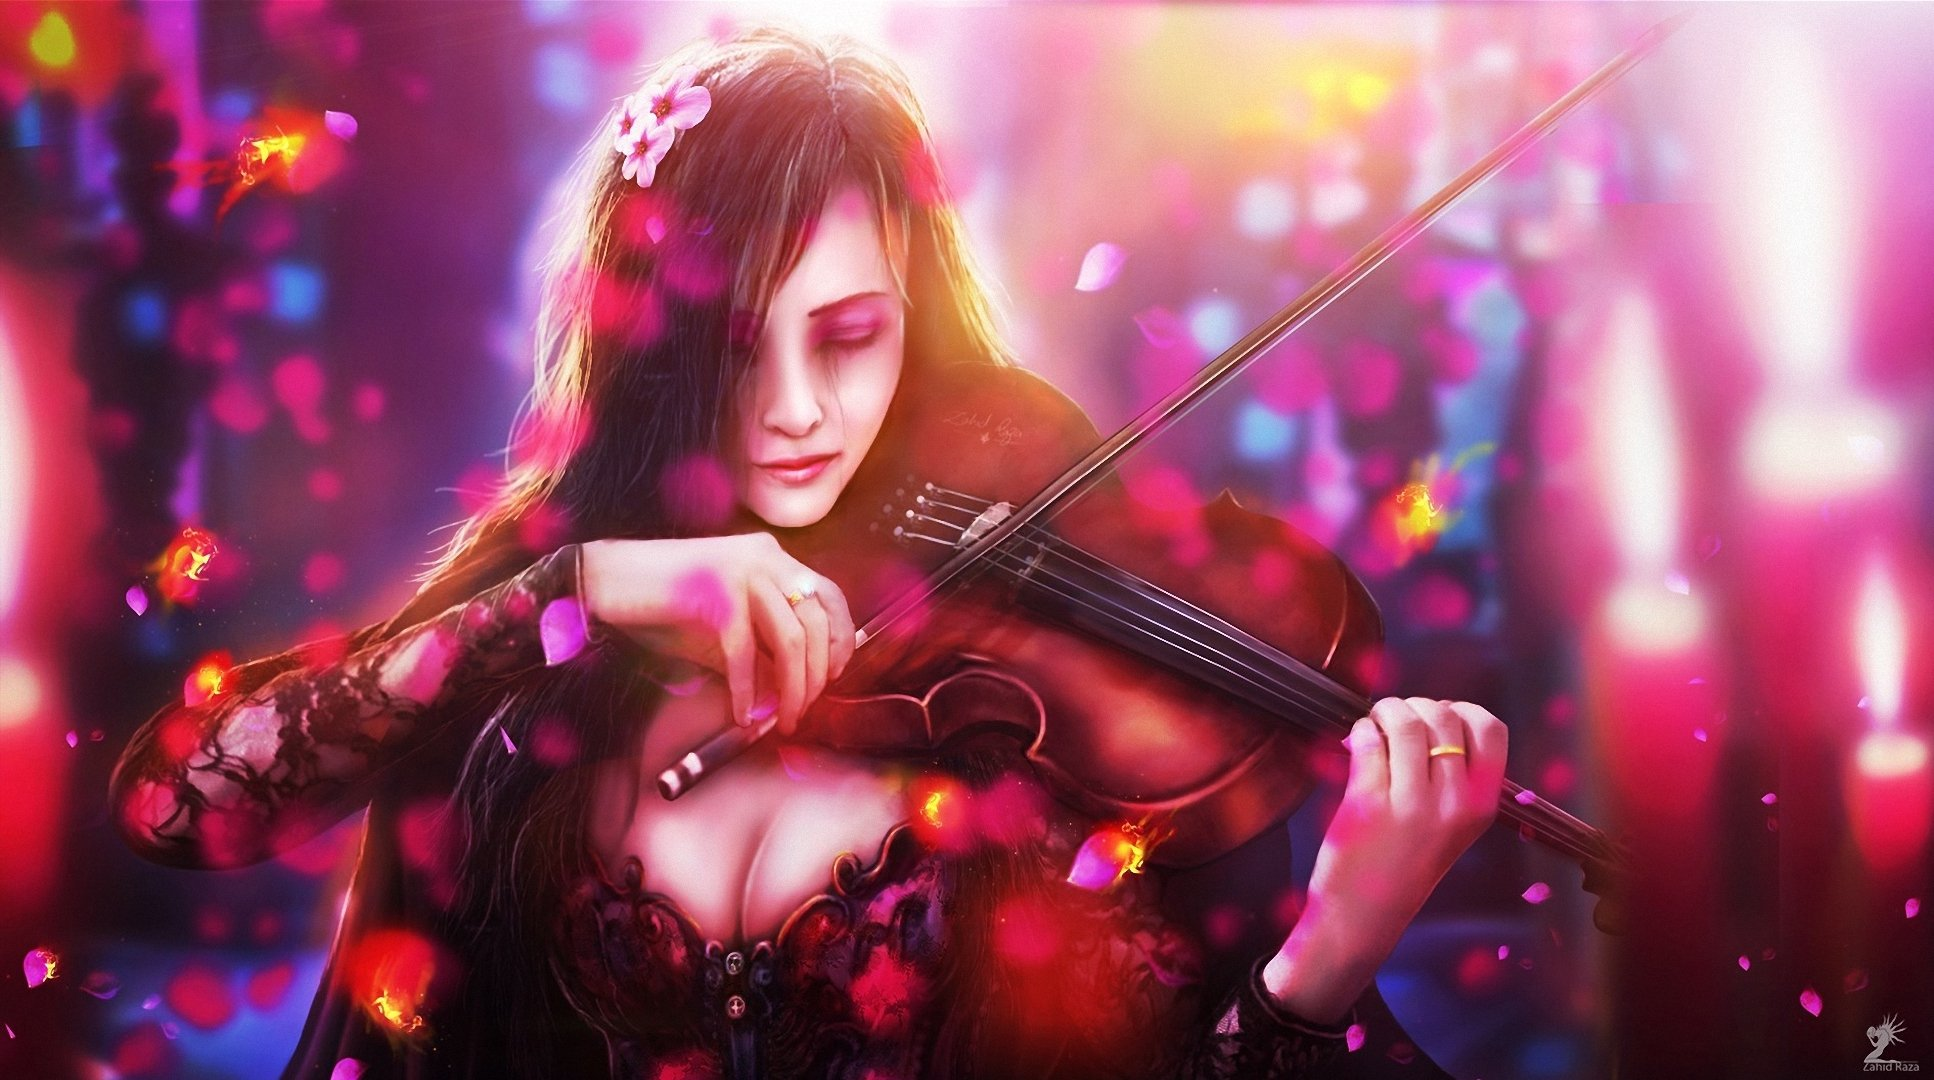 fantasy and magical realism in violin essay